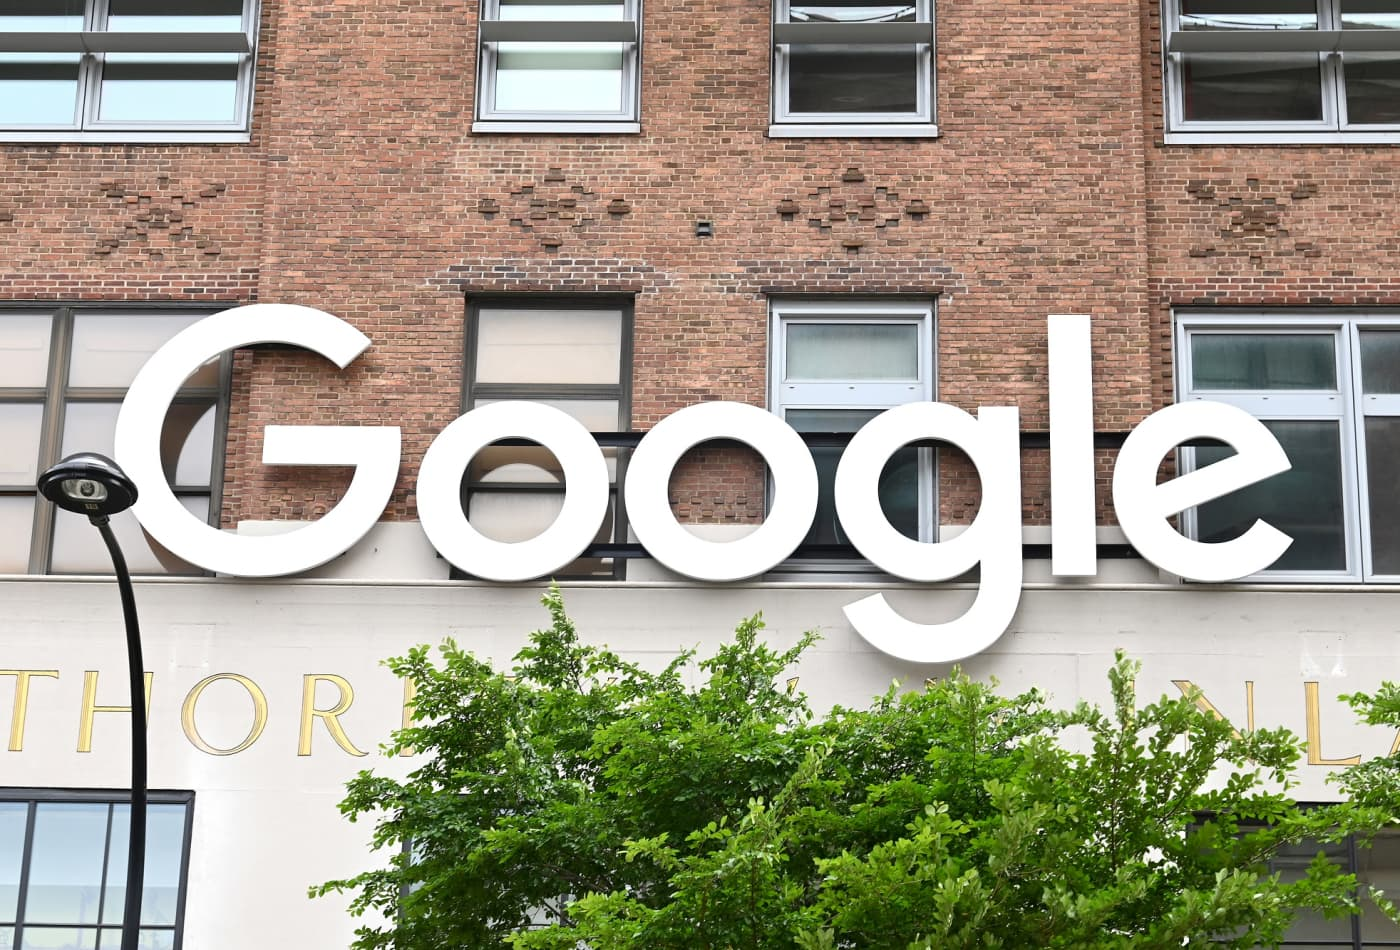 Google says it's confident about alternatives to browser cookies that track you for ads